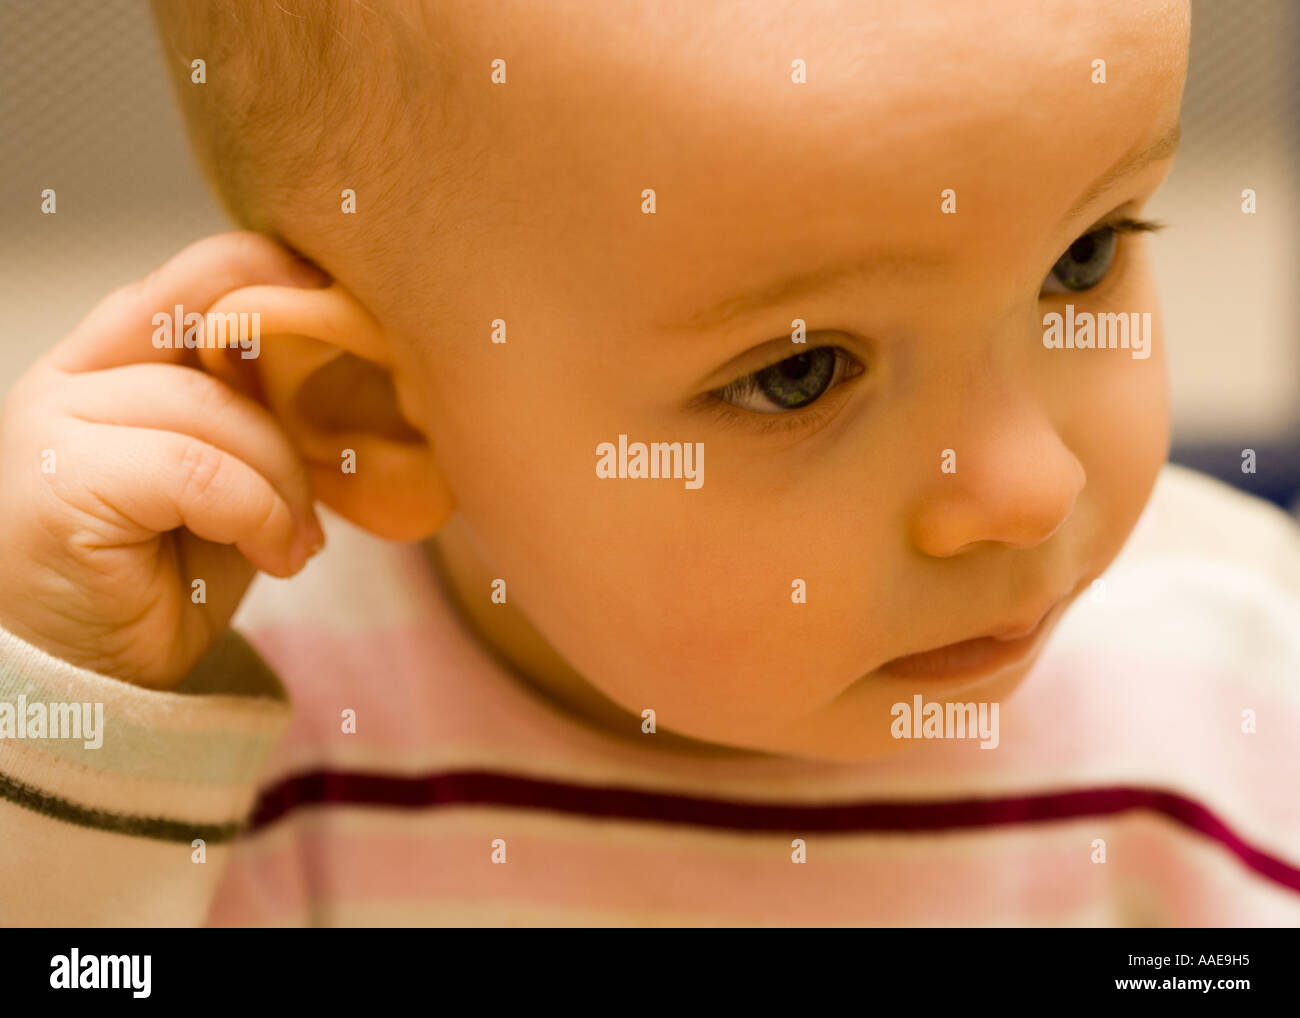 Baby Girl at 10 months holding her ear - very serious - Stock Image